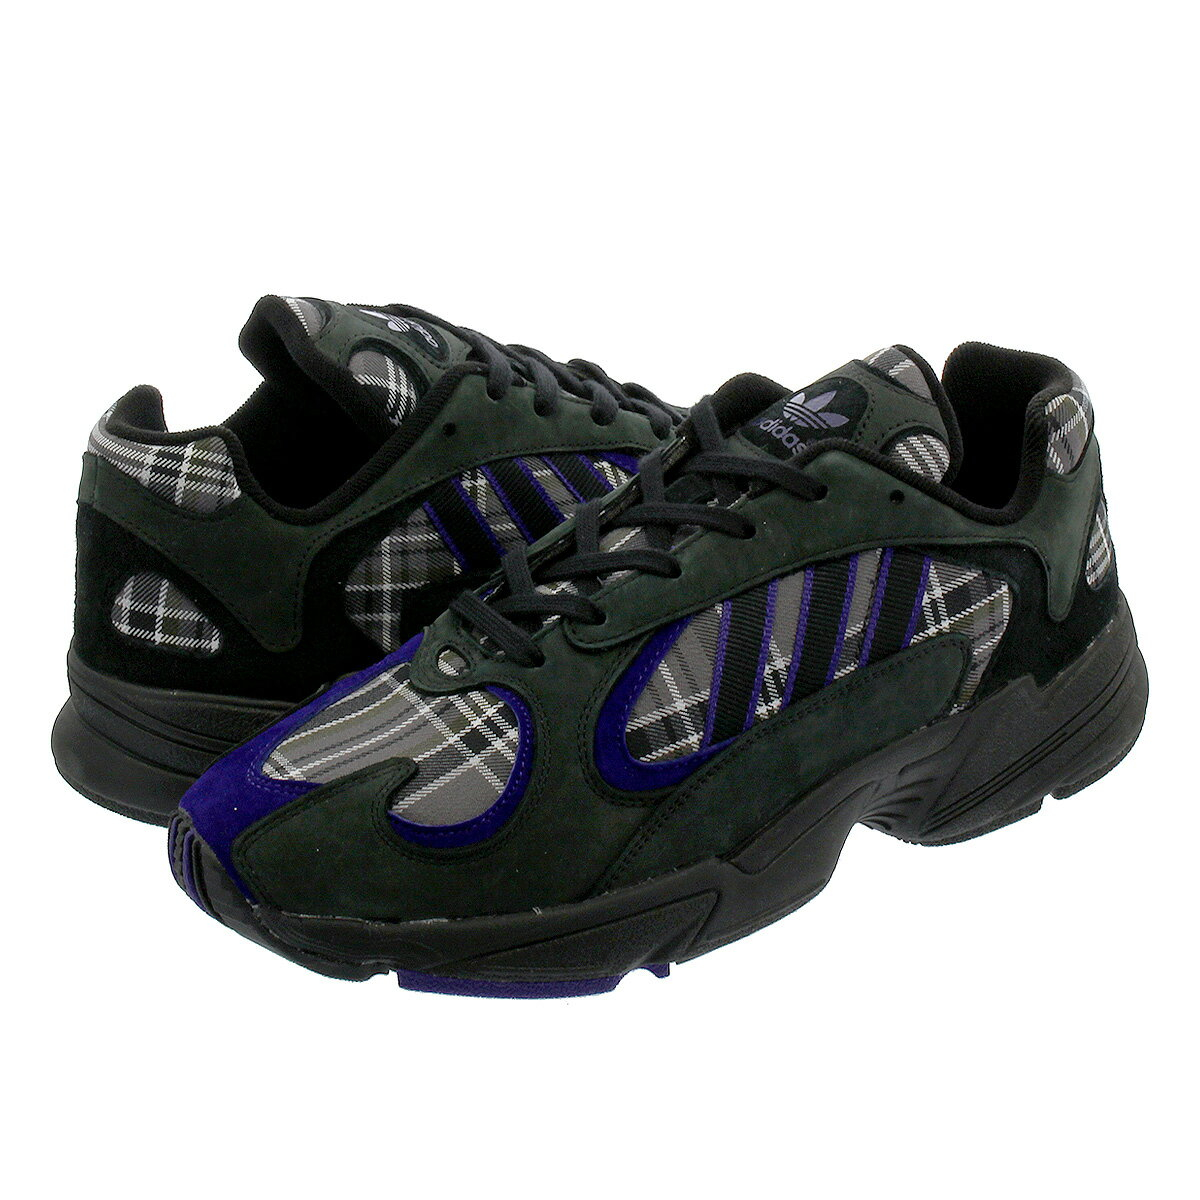 【毎日がお得!値下げプライス】 adidas YUNG-1 【adidas Originals】 アディダス ヤング 1 CORE BLACK/COLLEGE PURPLE/CORE BLACK ef3965